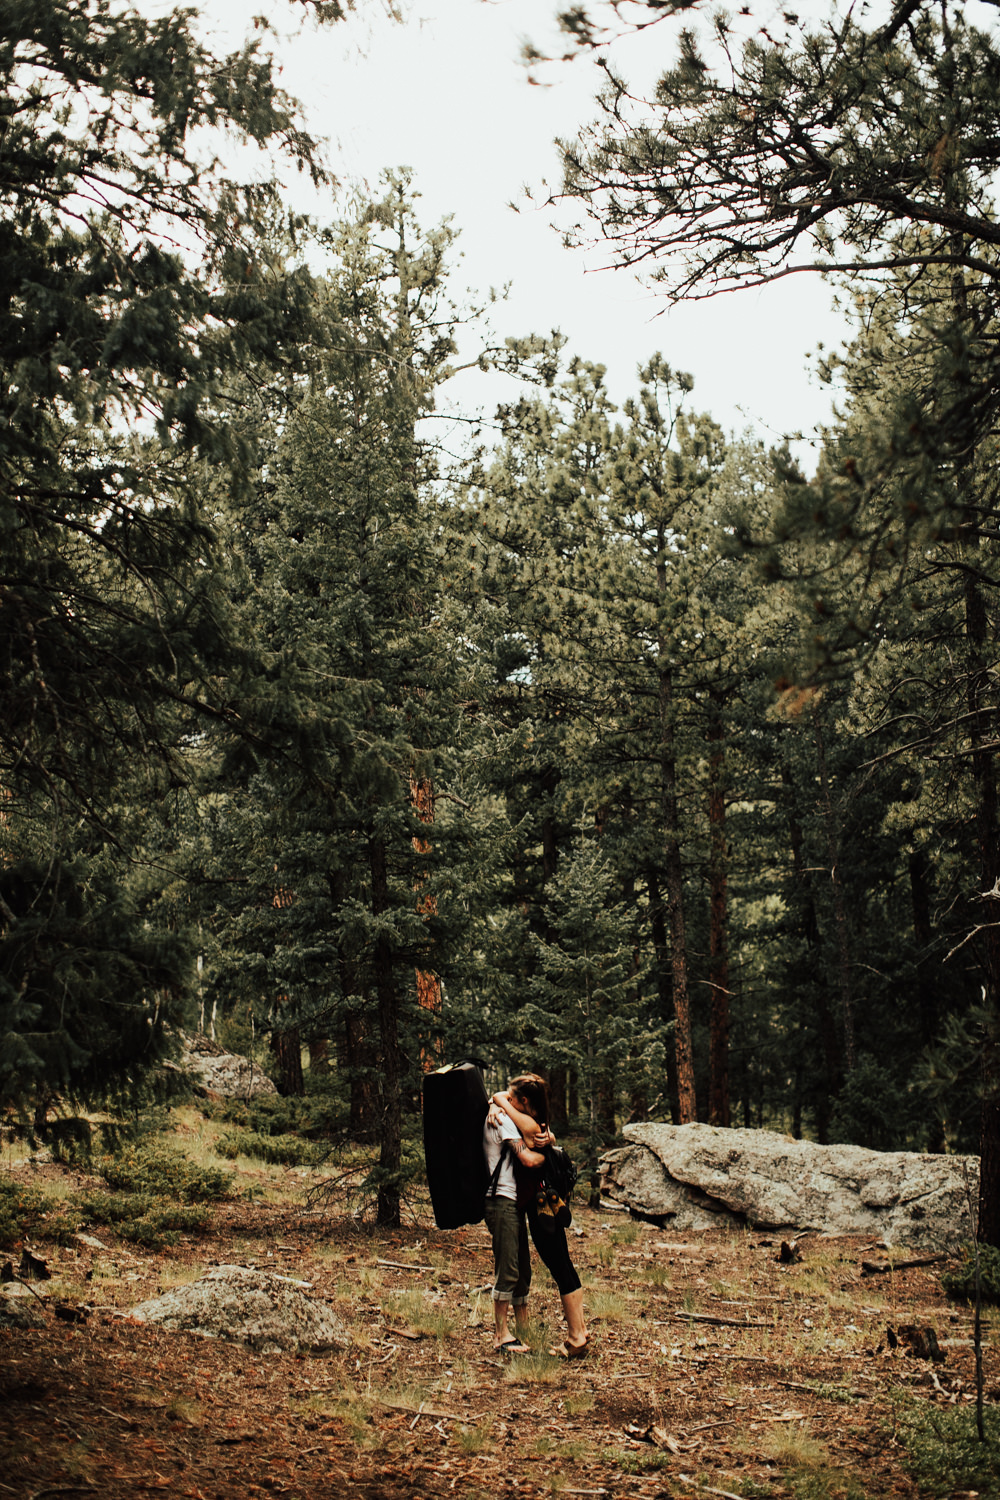 Rock climbing couple embracing in wooded area